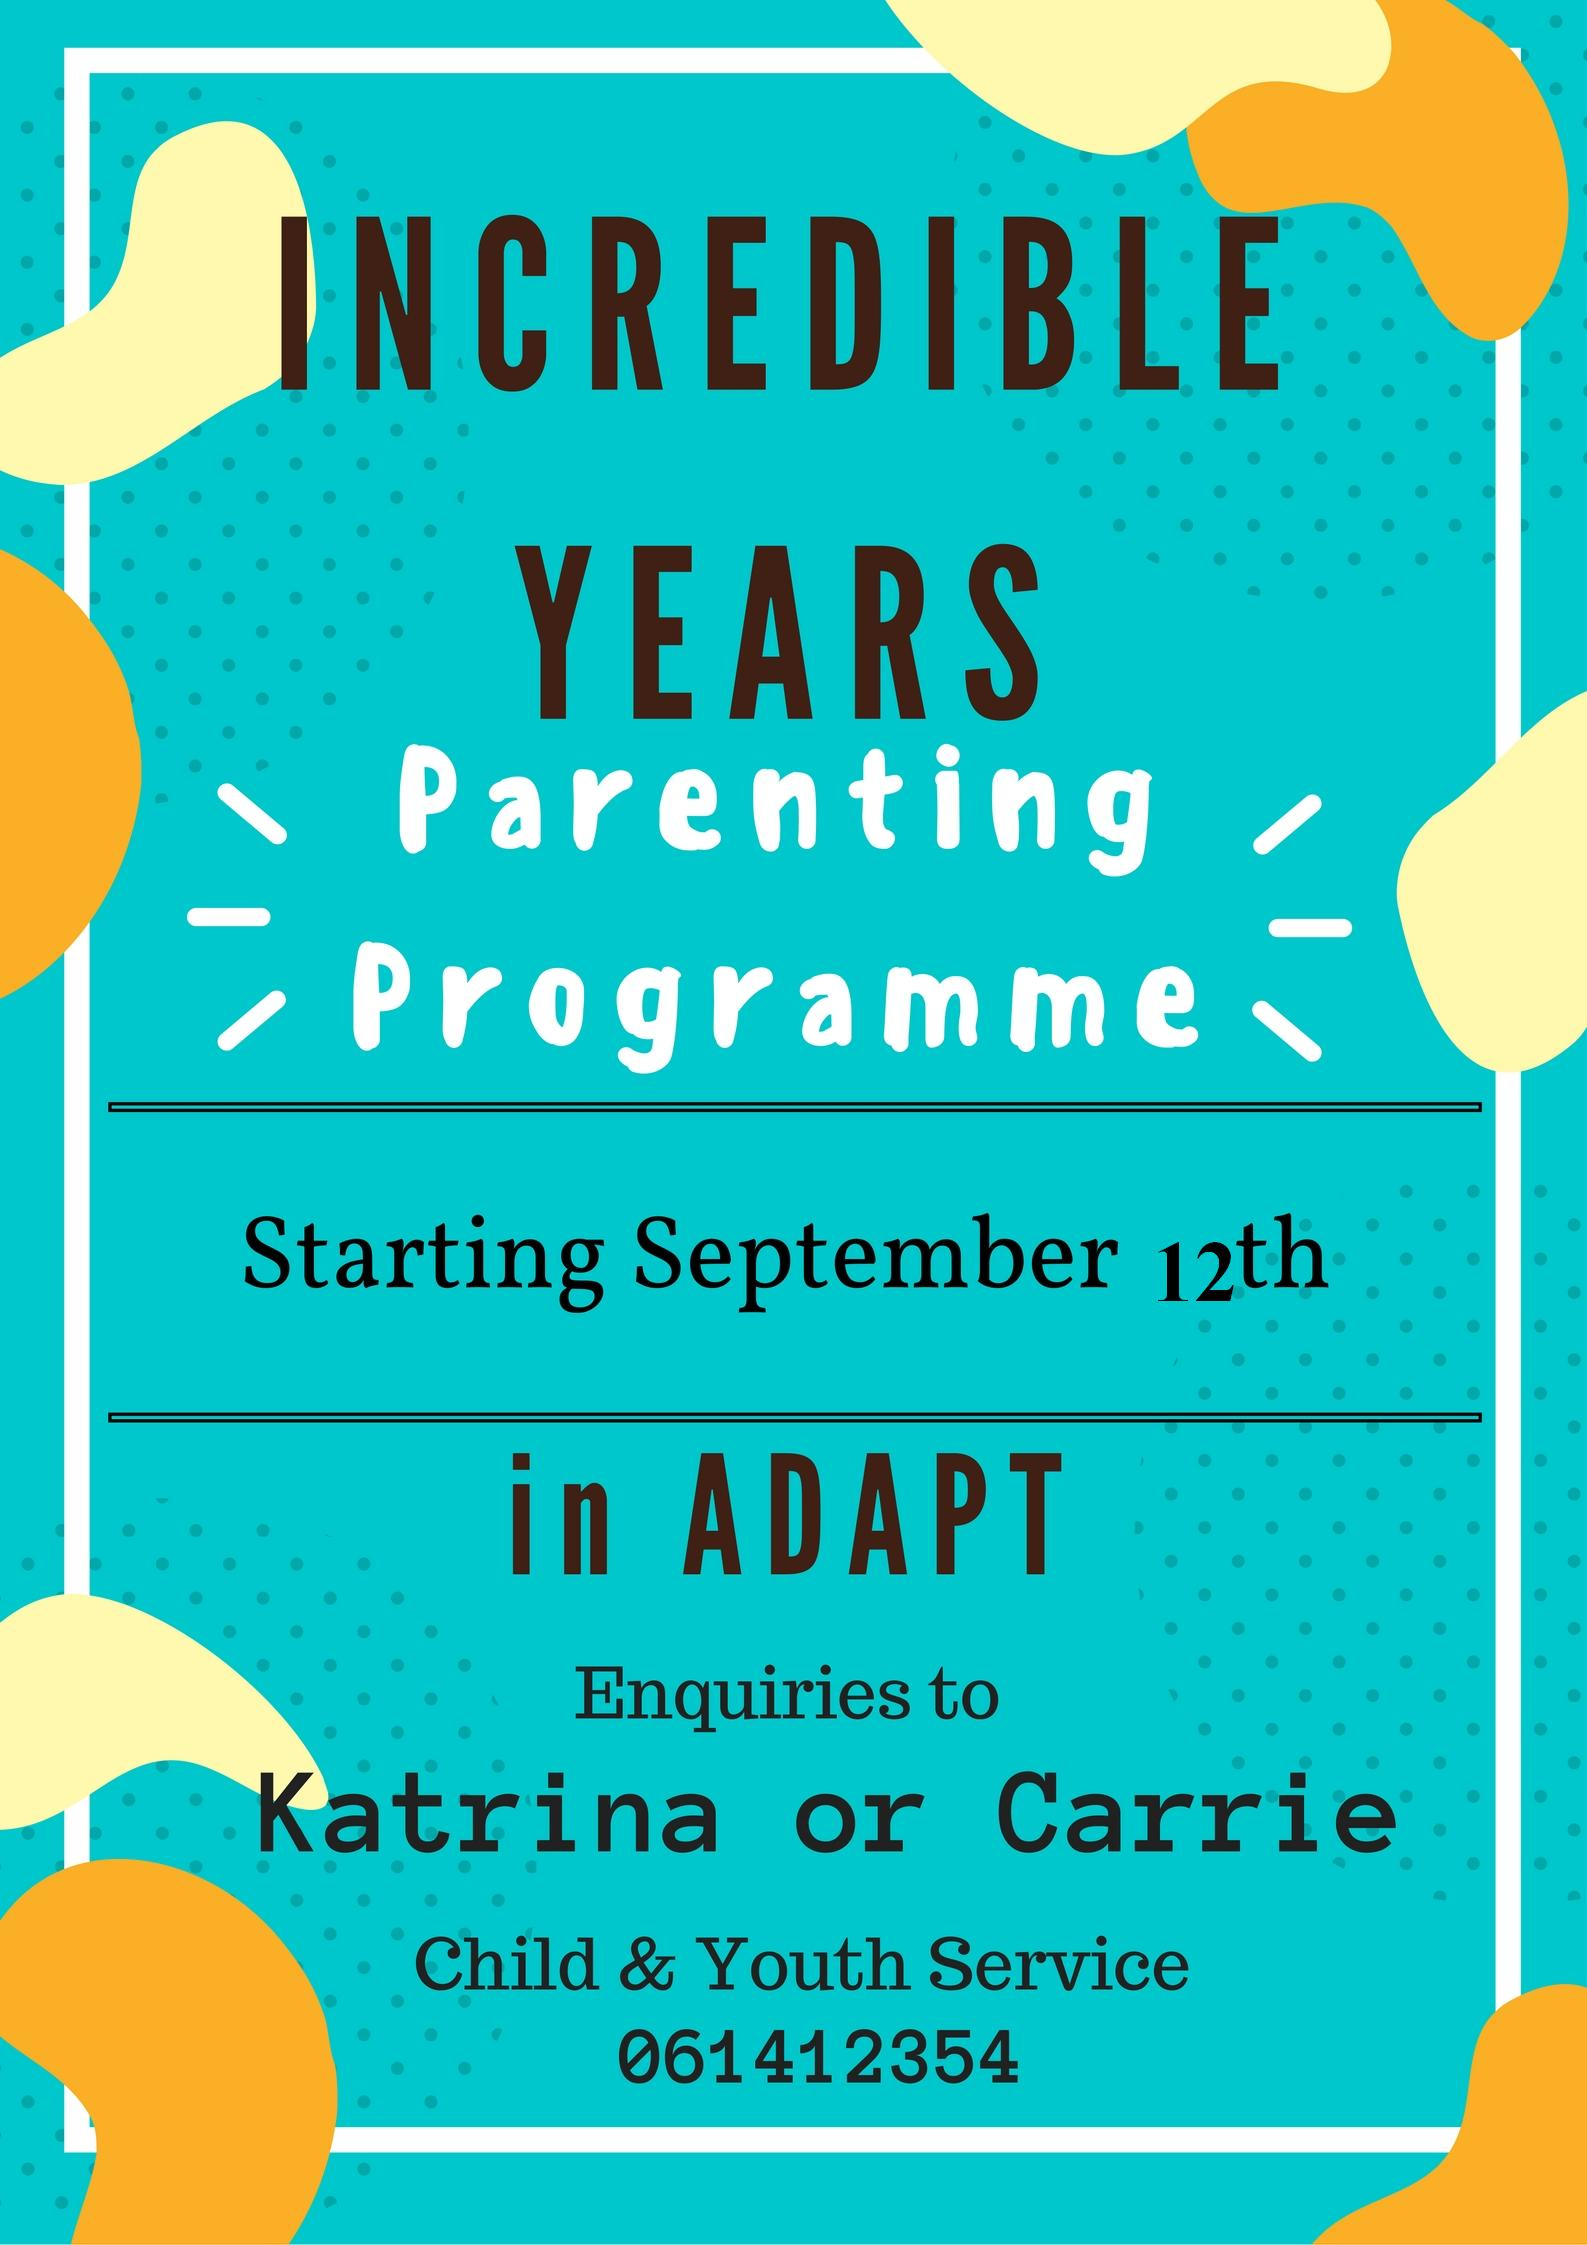 incredible years parenting programme @ ADAPT